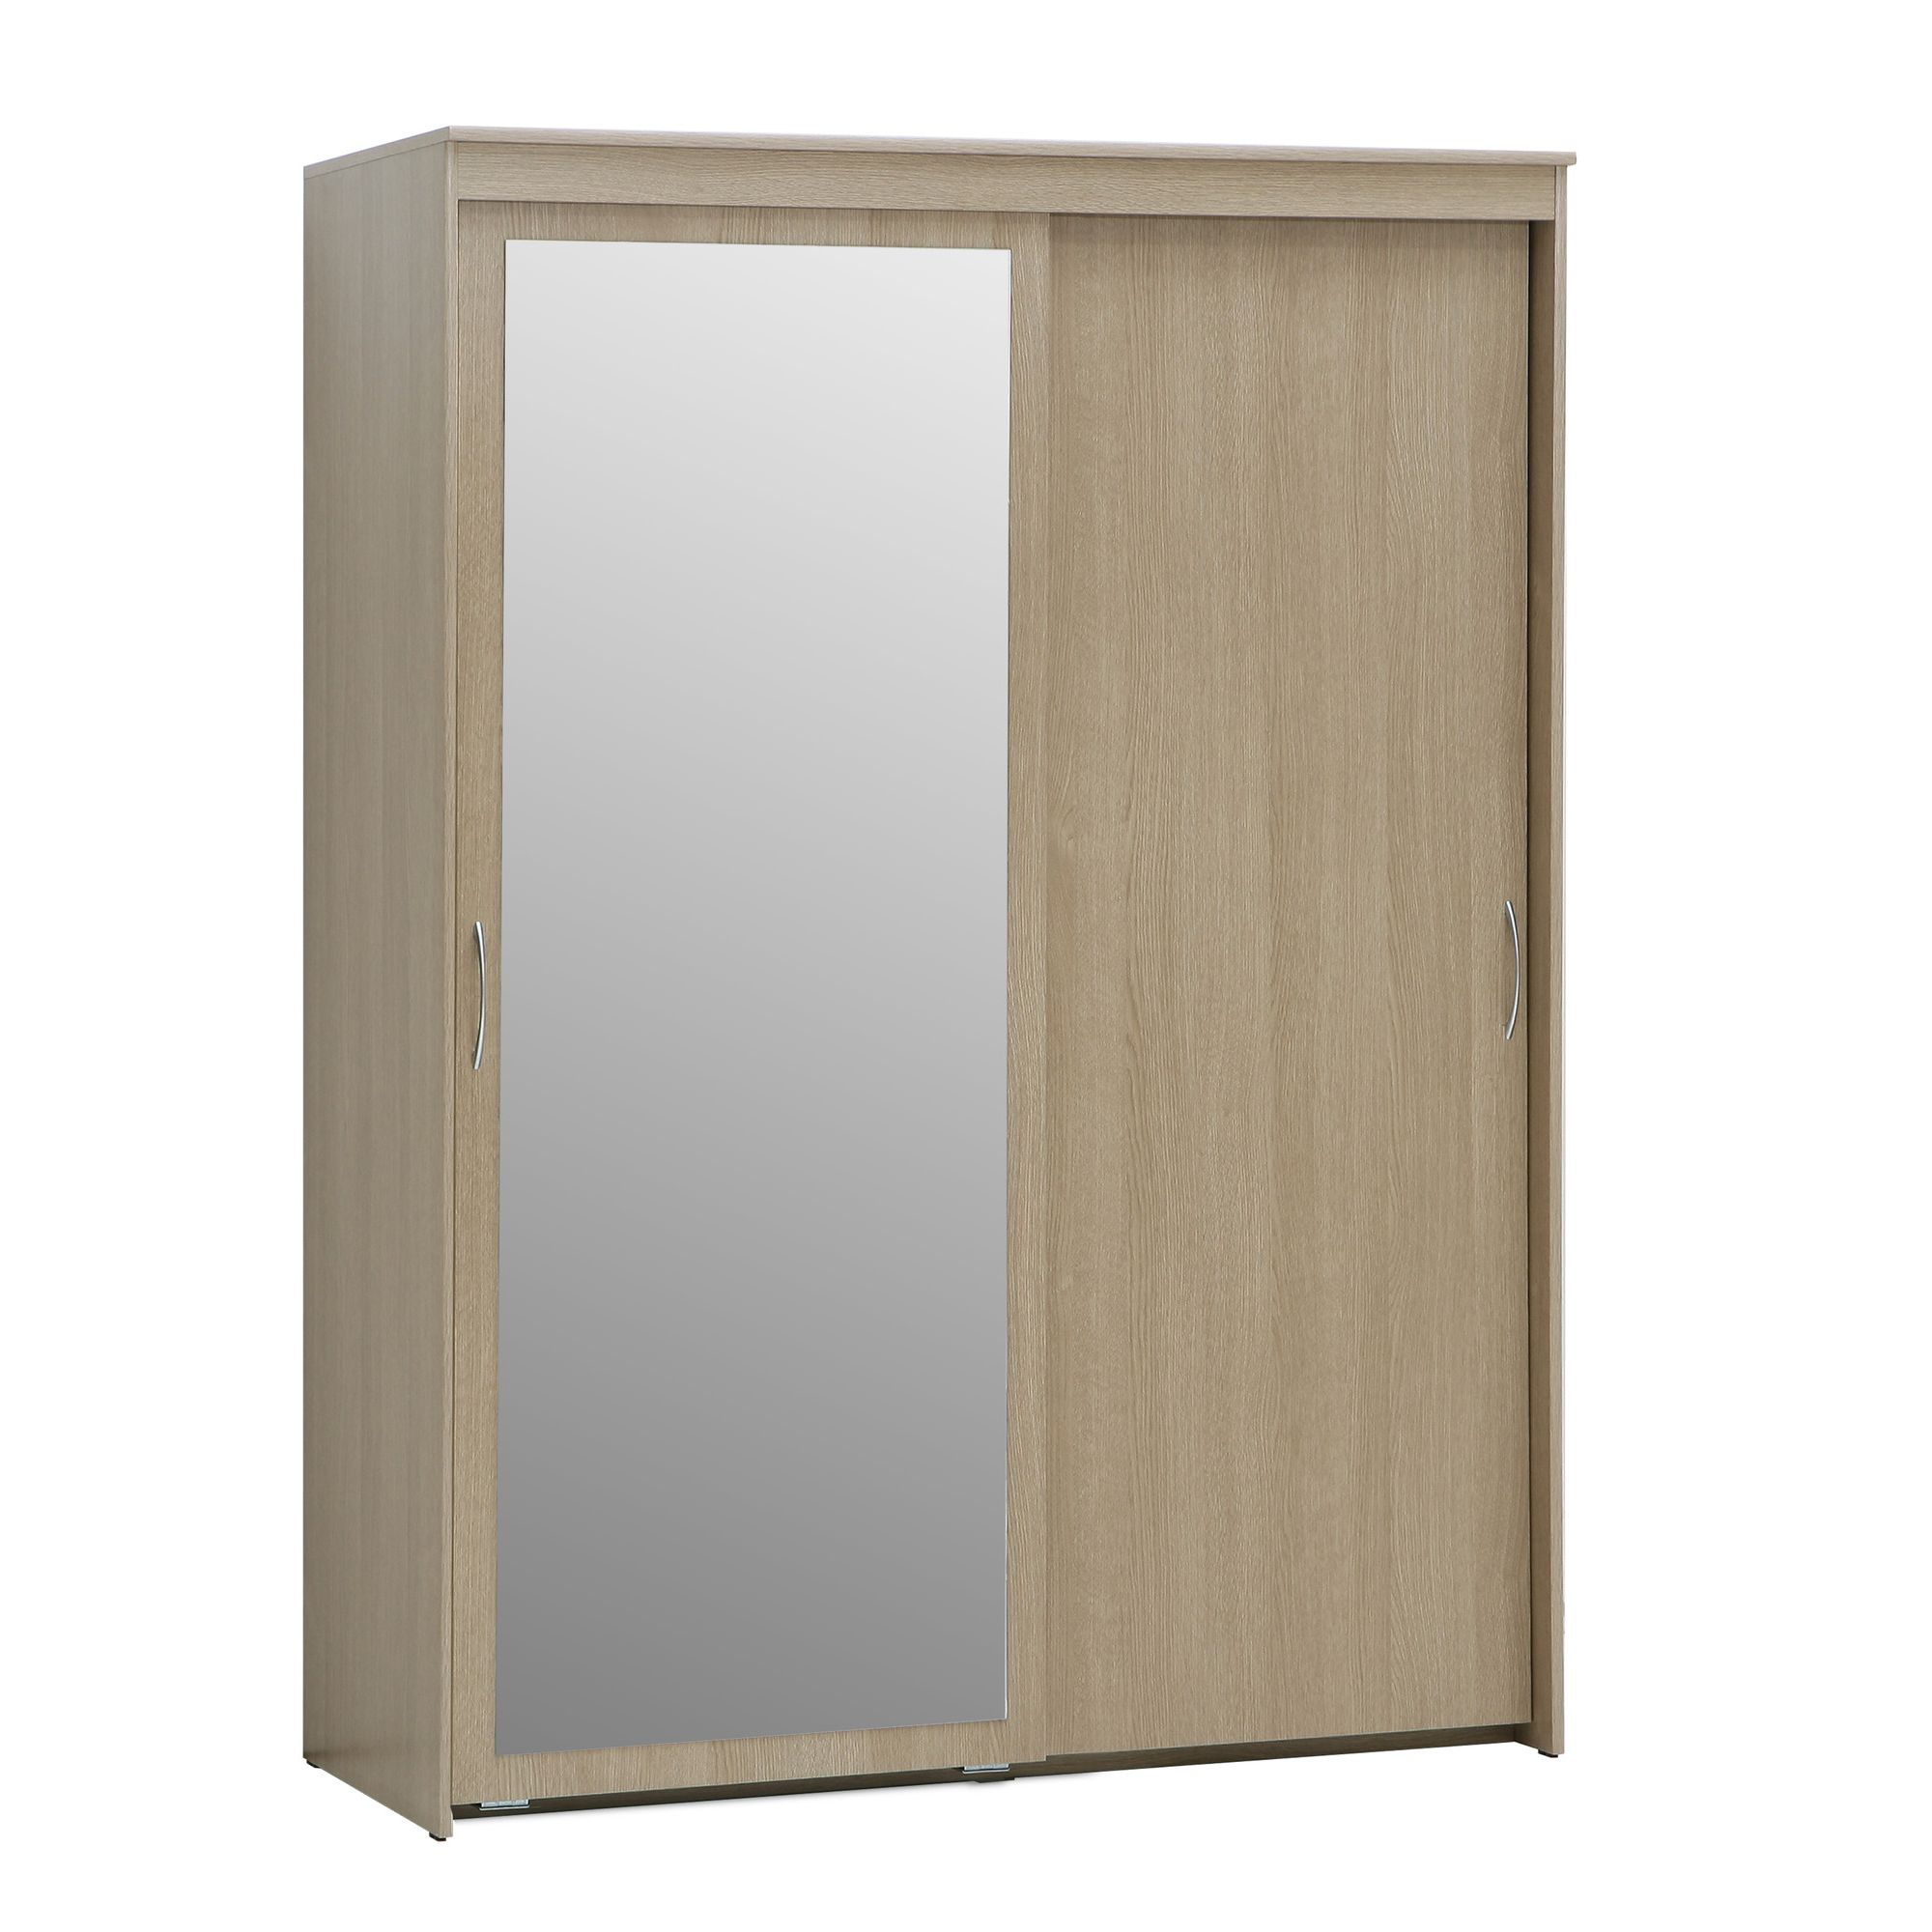 Ideal Furniture Onyx Sliding Wardrobe in Yorkshire Oak at Tescos Direct